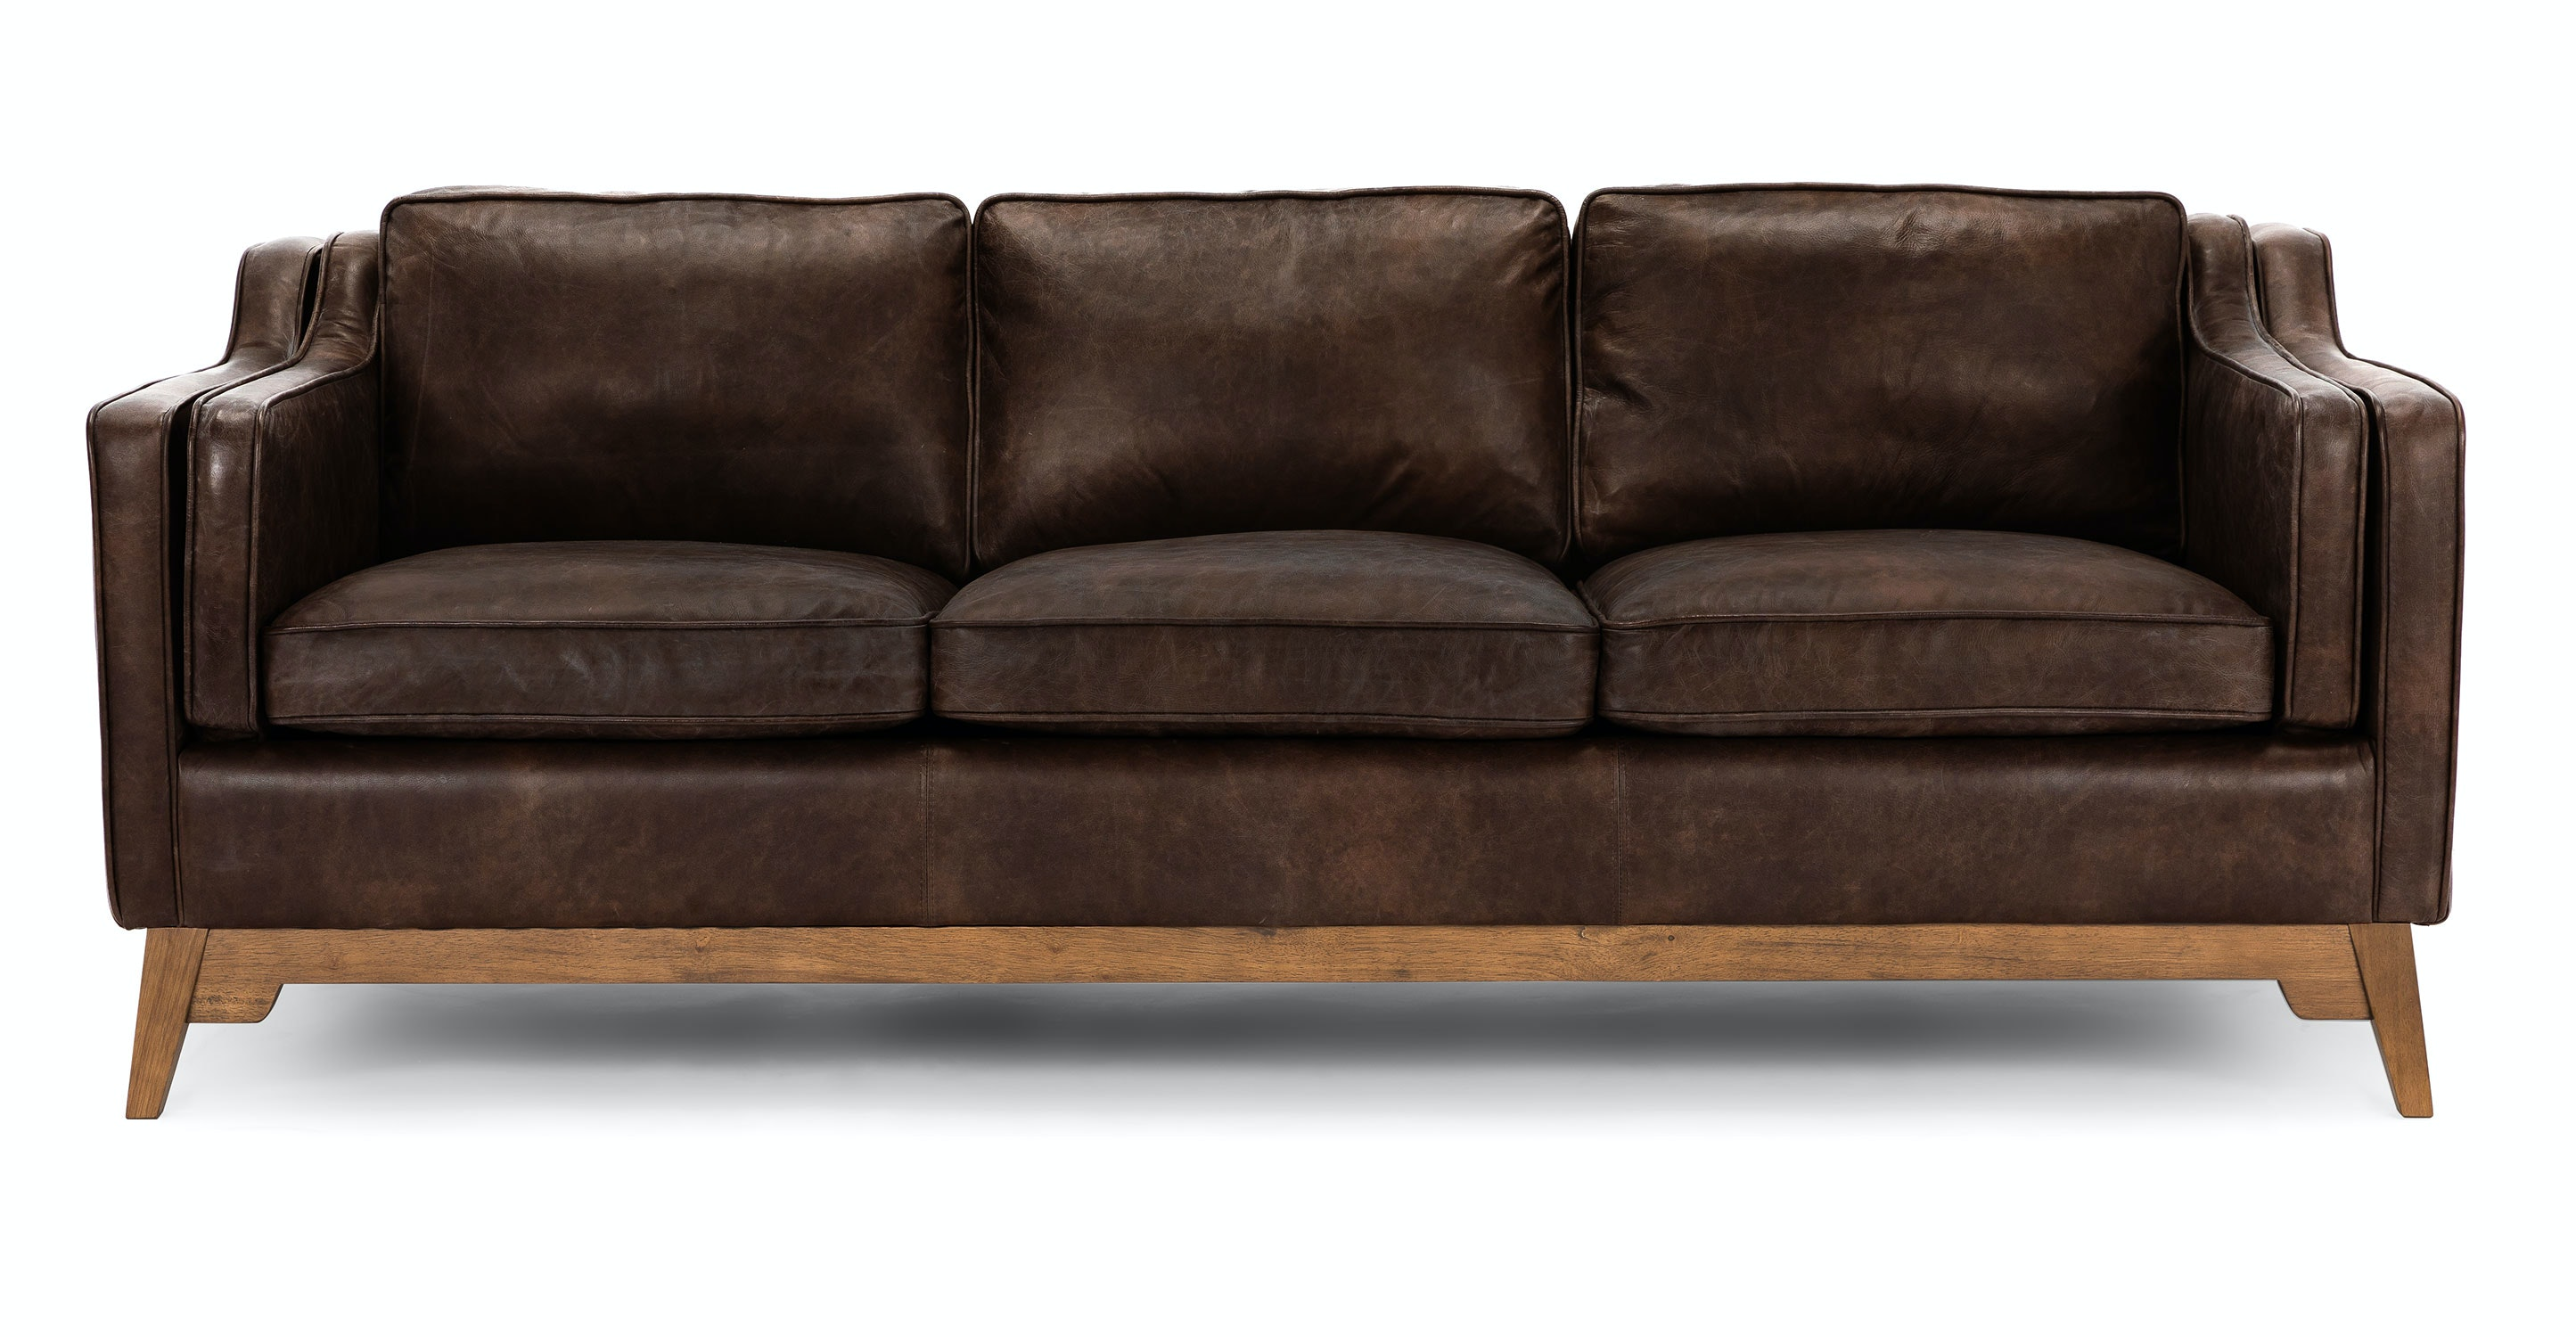 Brown Leather Sofa - Upholstered | Article Worthington Modern Furniture